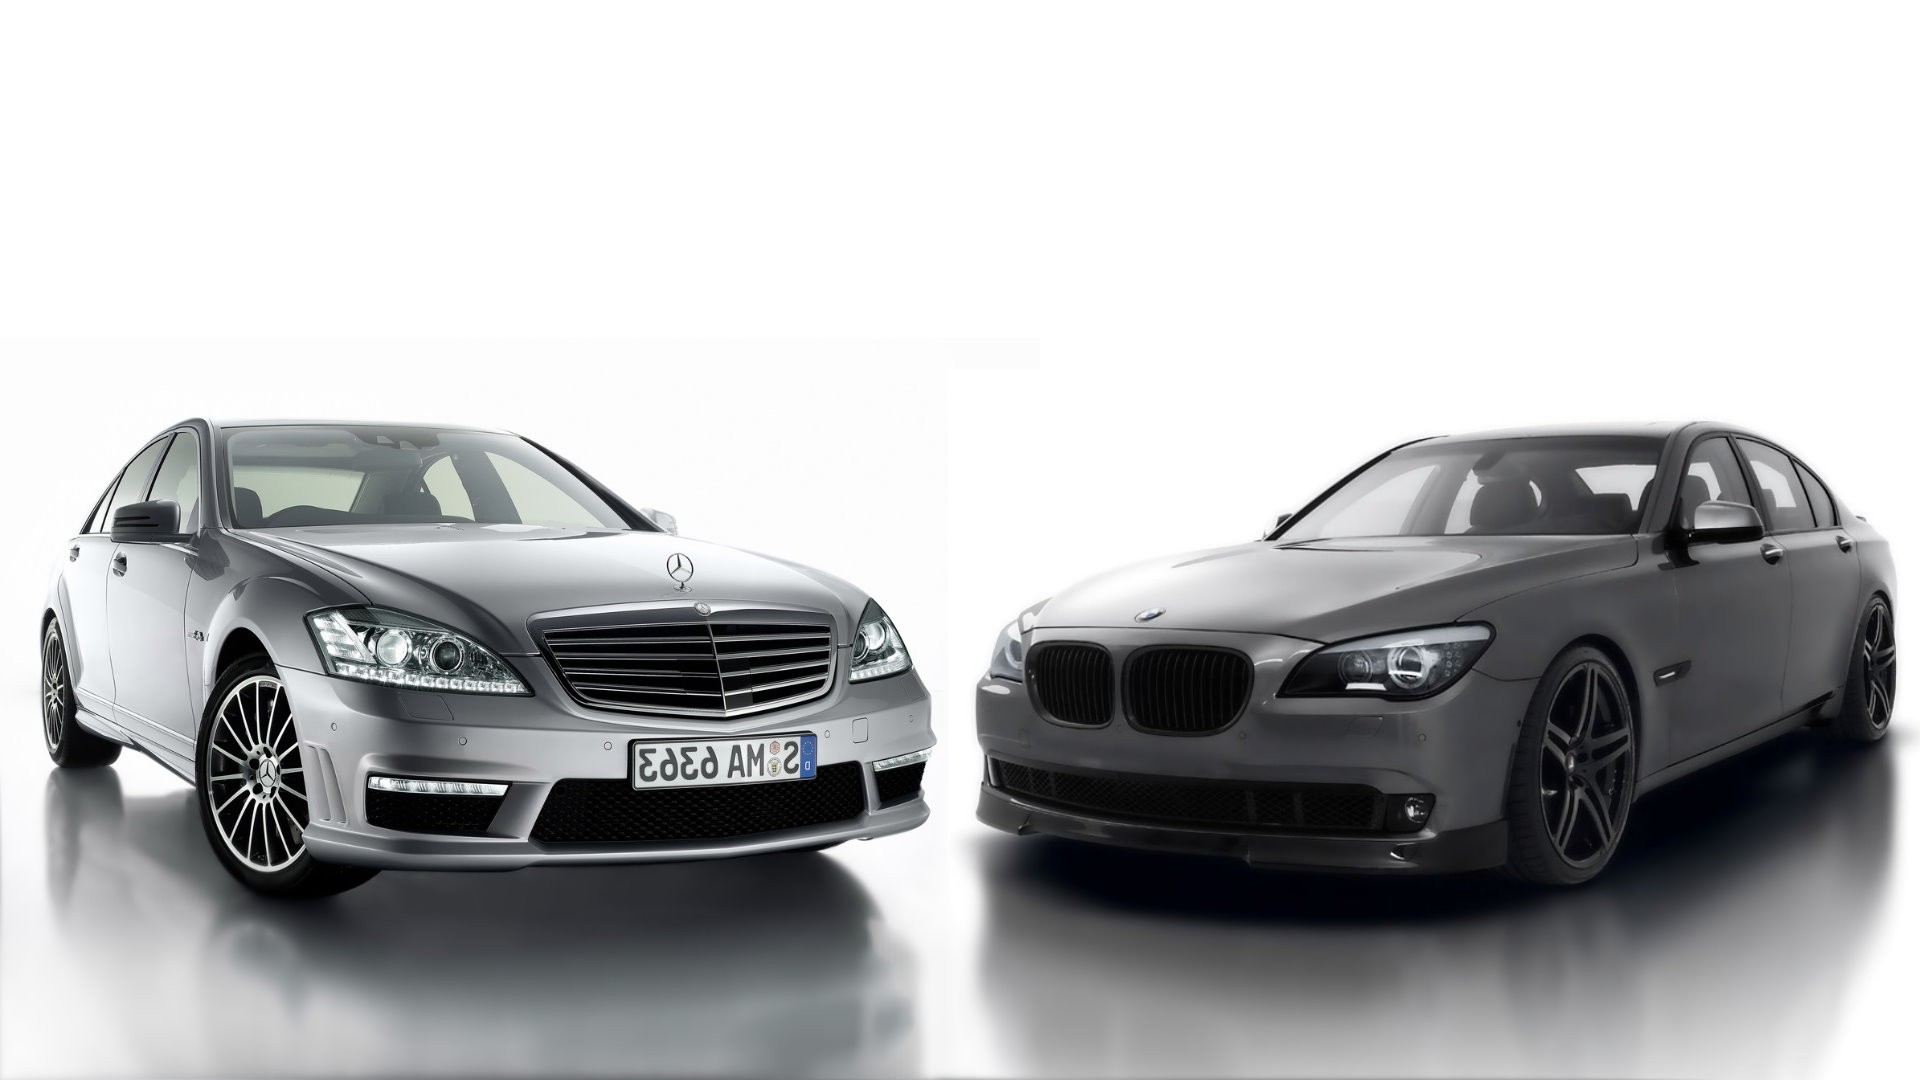 cars Mercedes-Benz bmw m3 HD Wallpaper